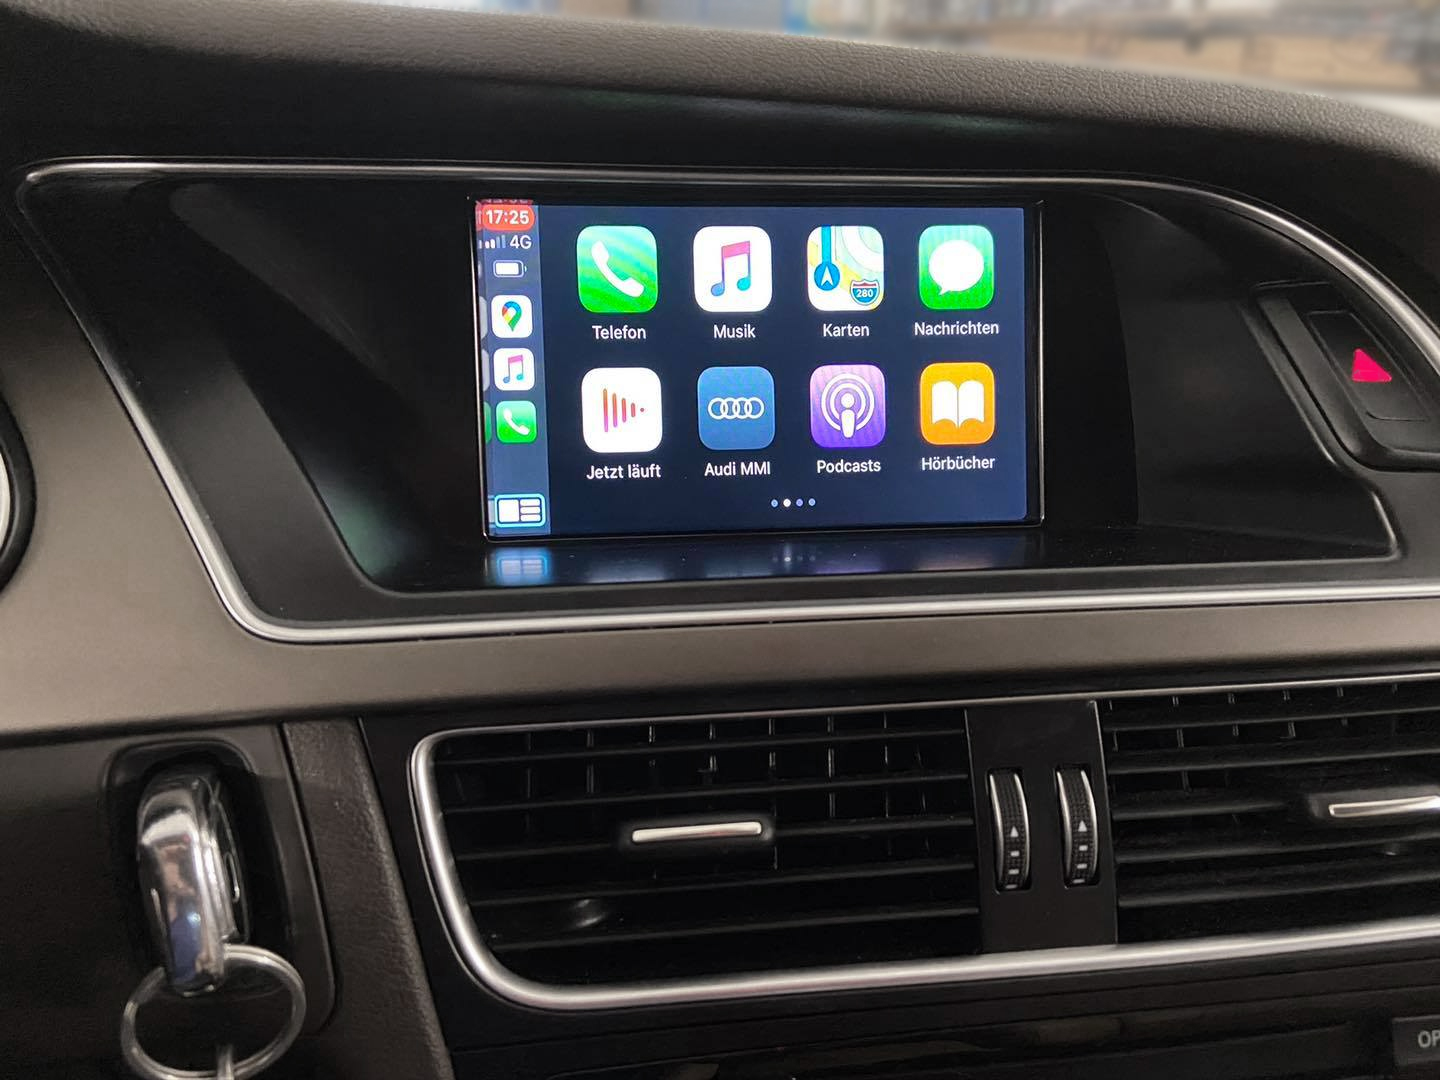 Carplay im Audi A4 mit MMI3G